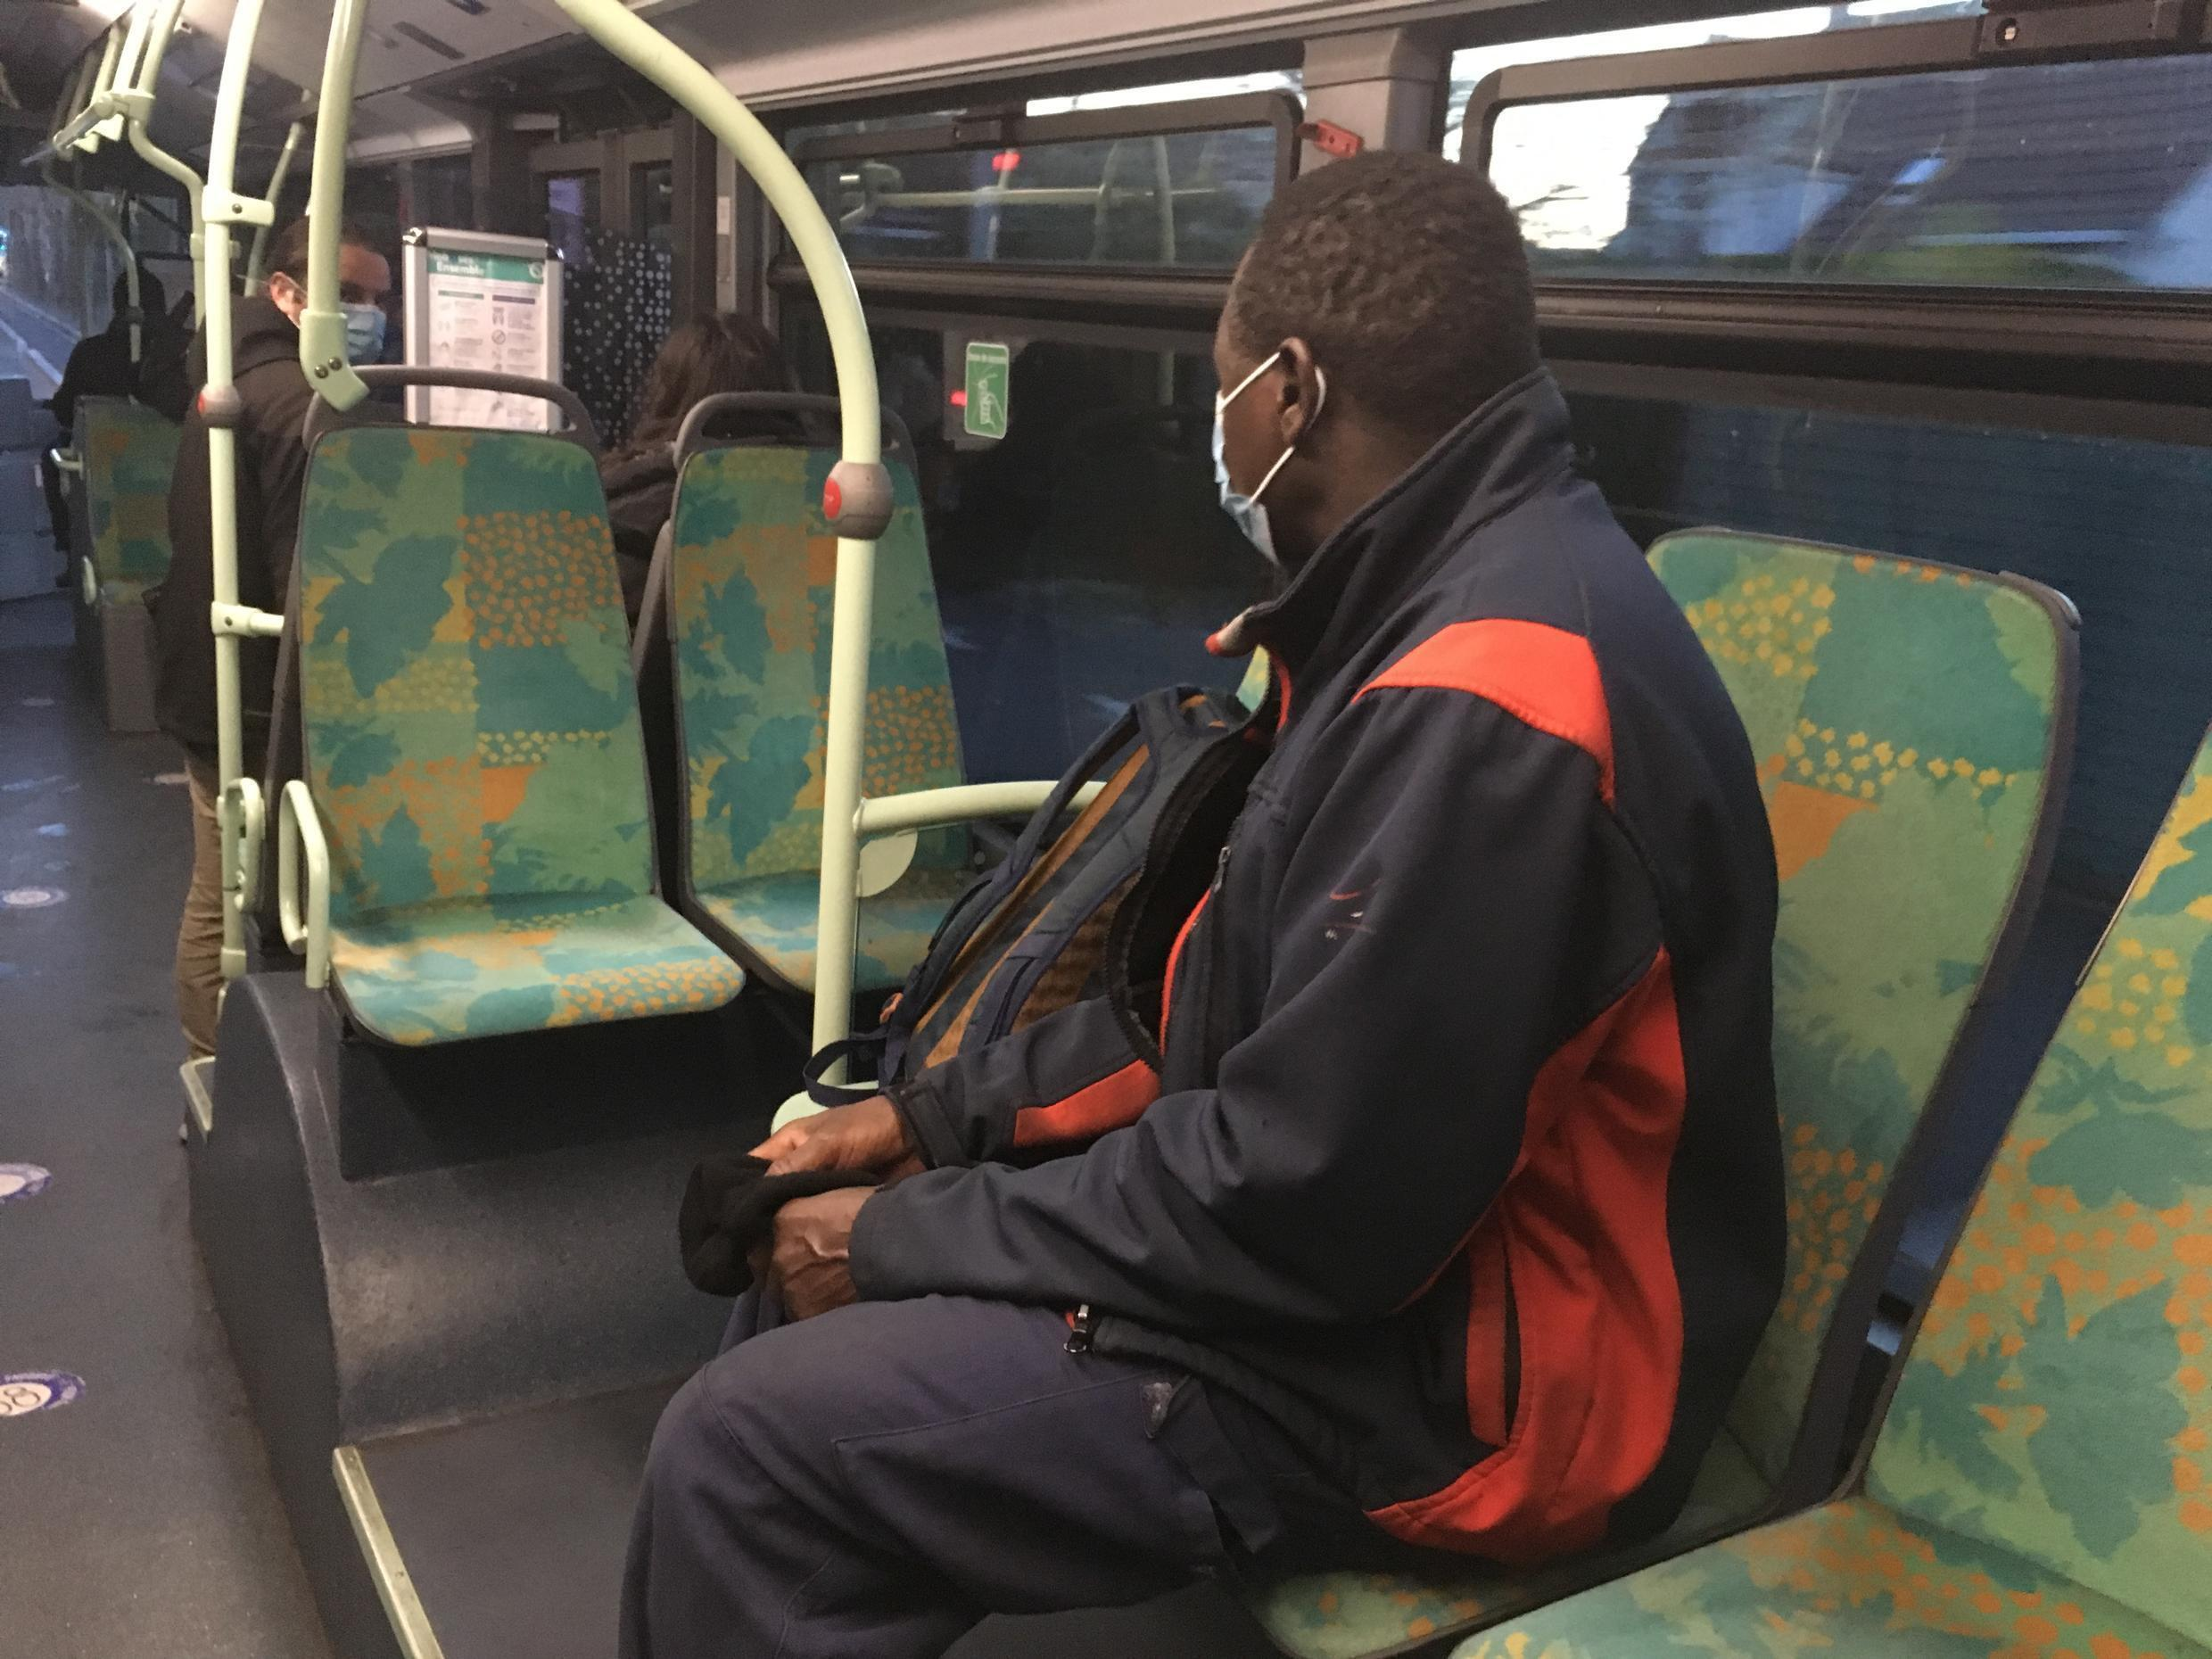 Moussa, a forklift operator and regular passenger on bus route 351.